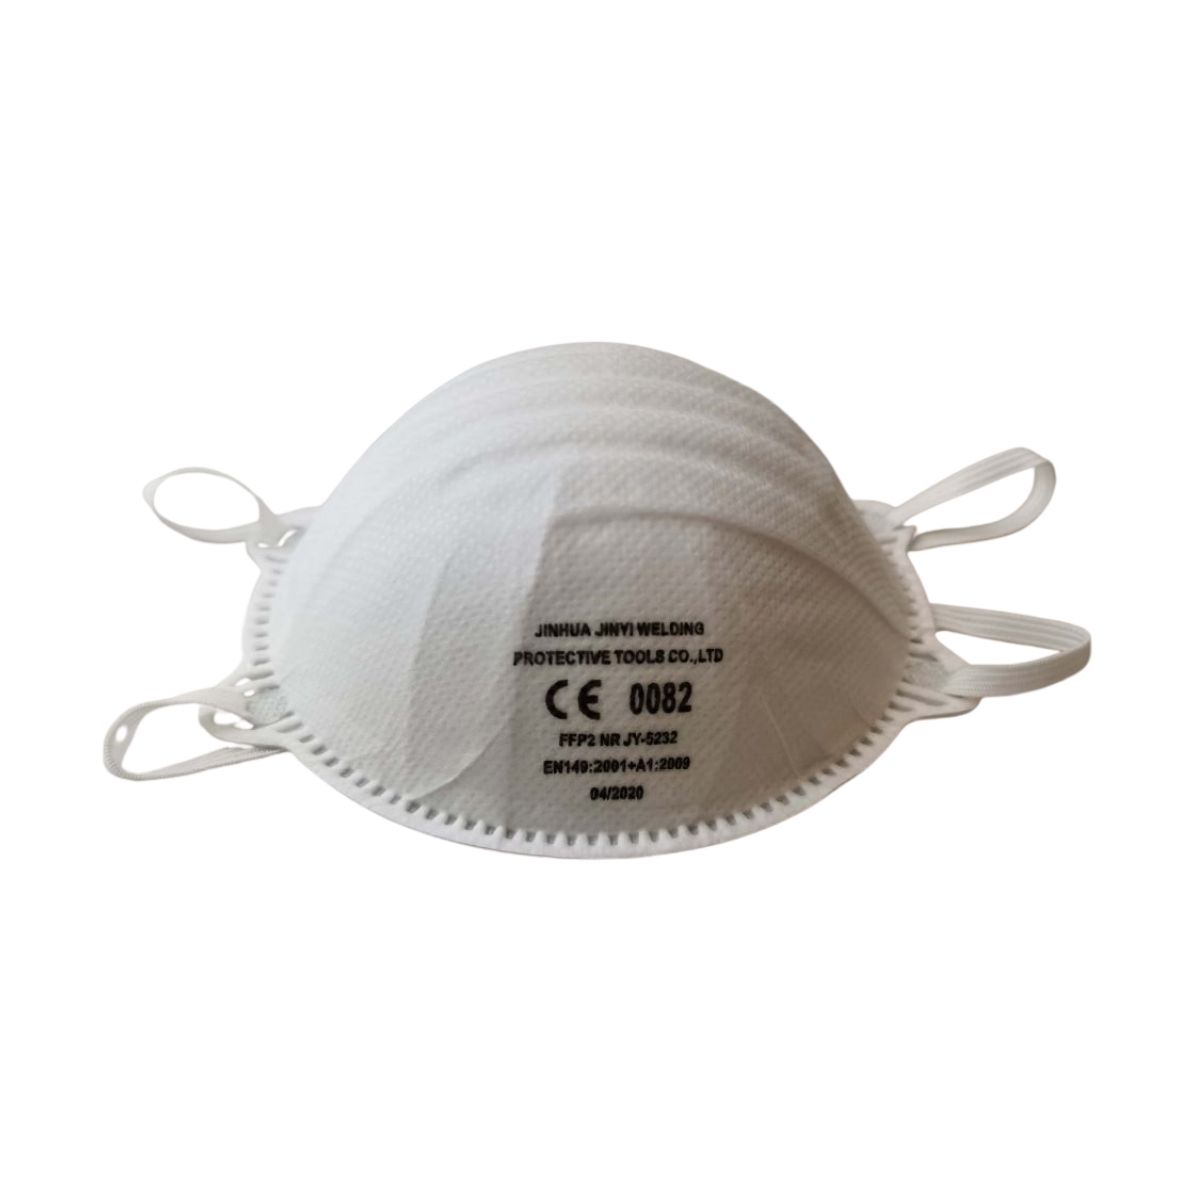 RP0032 FFP2 Non-Valved Cupped Mask (Box of 20)